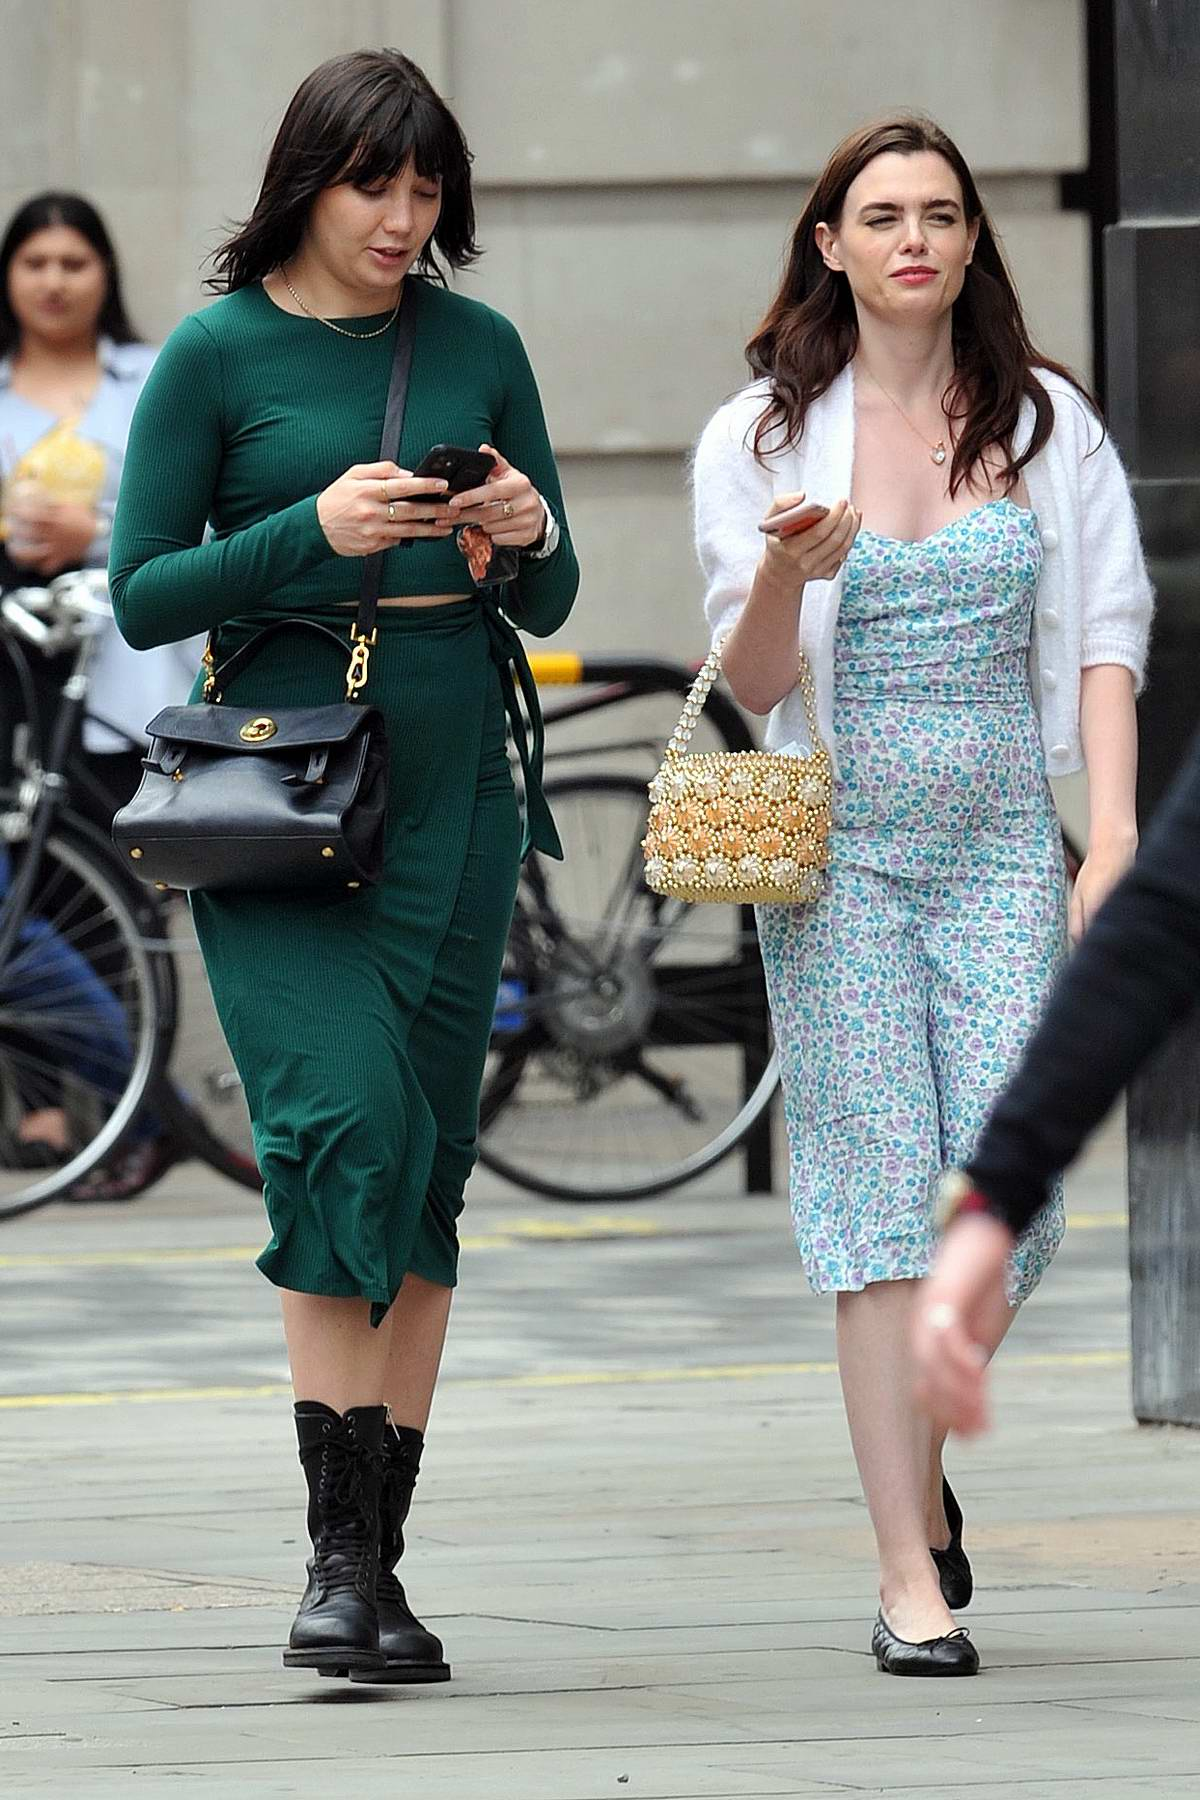 Daisy Lowe wears a form-fitting green dress during a shopping trip with Charli Howard in London, UK